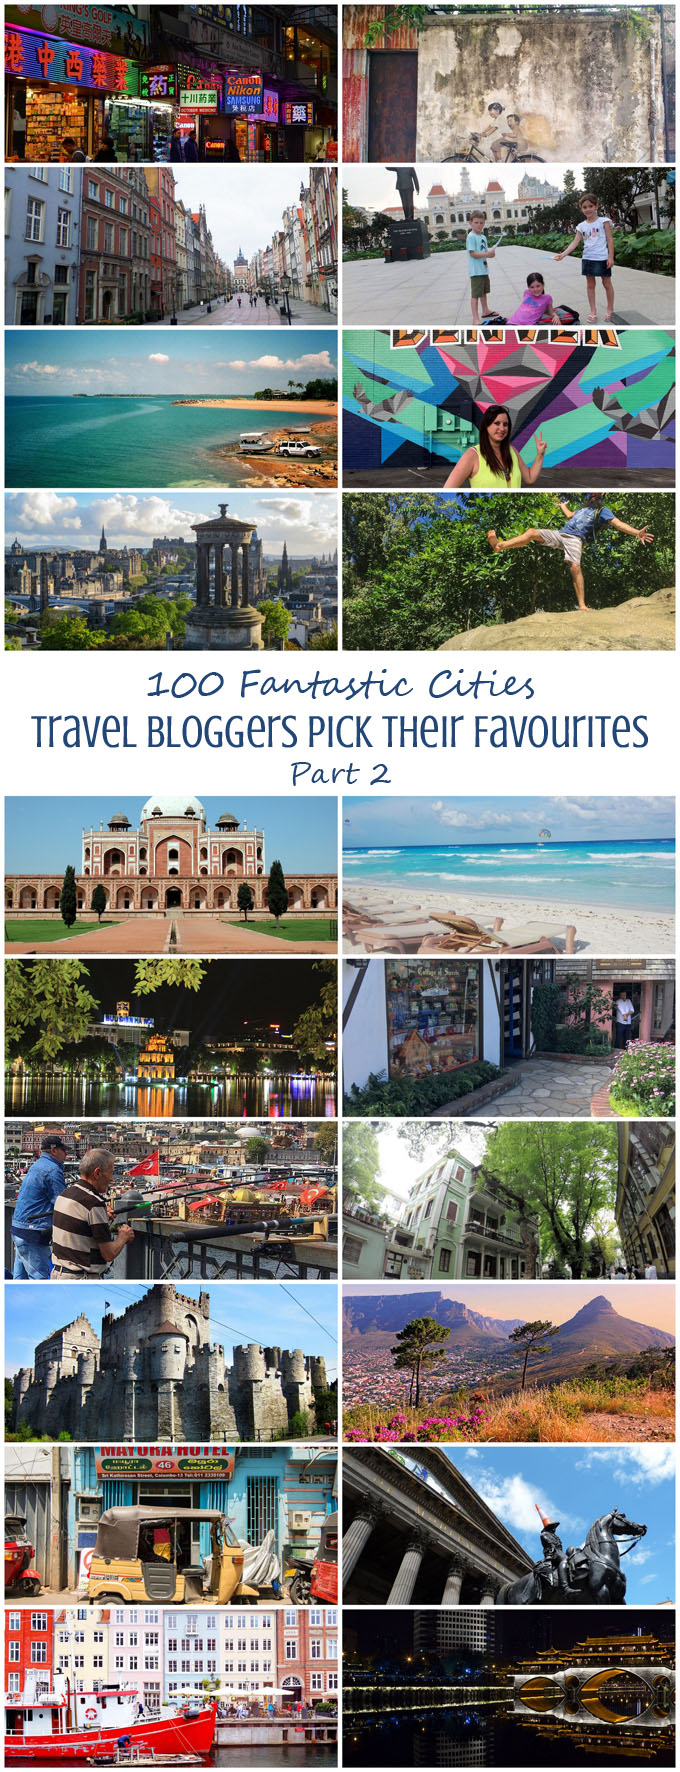 100 Fantastic Cities for City Breaks, as chosen by travel bloggers (part 2)